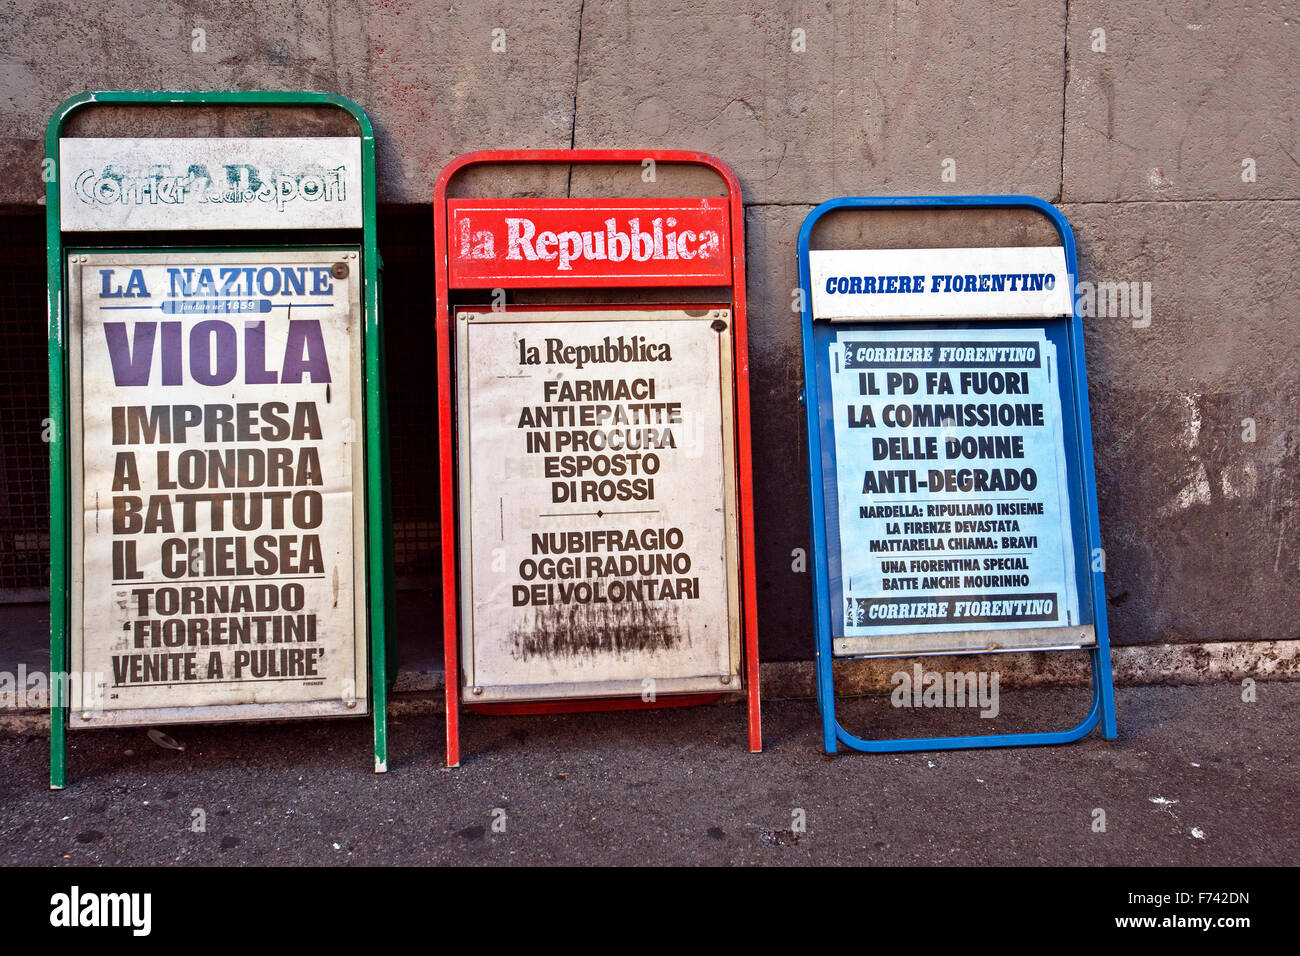 Italian newspaper headline advertising boards - Stock Image